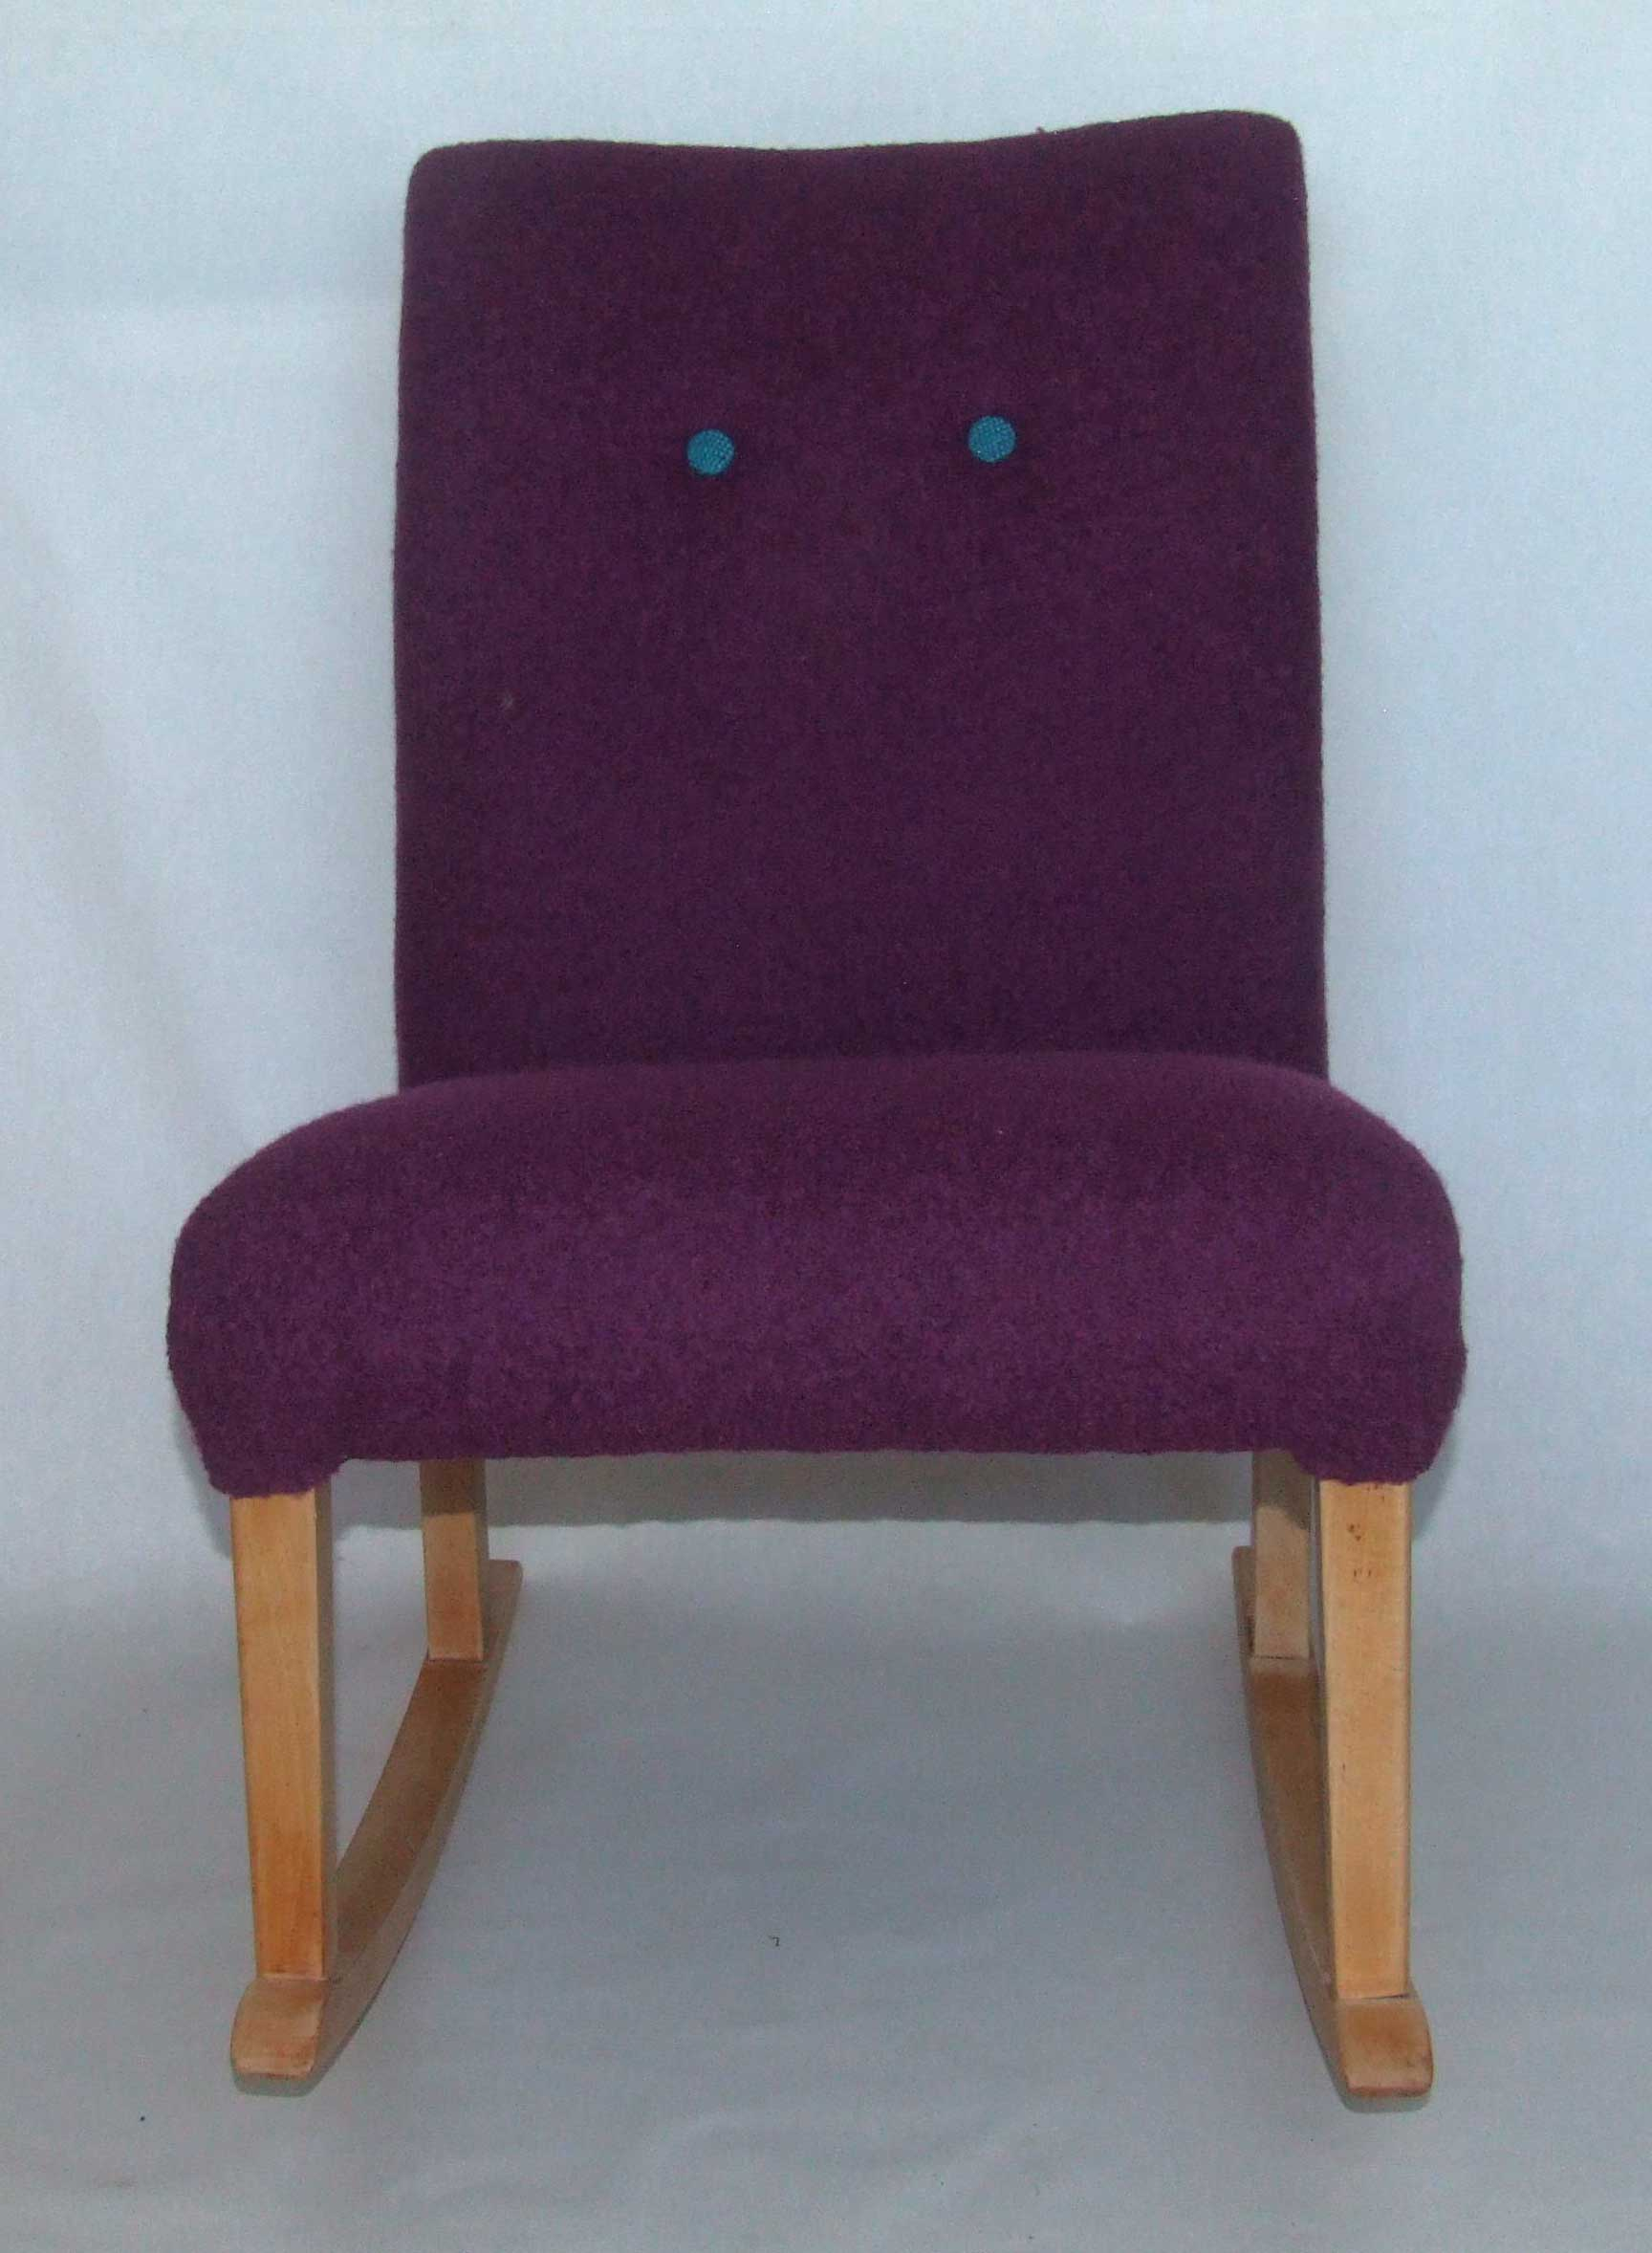 mid century chairs uk leather wing chair india rocking chair1 maud chairsmaud